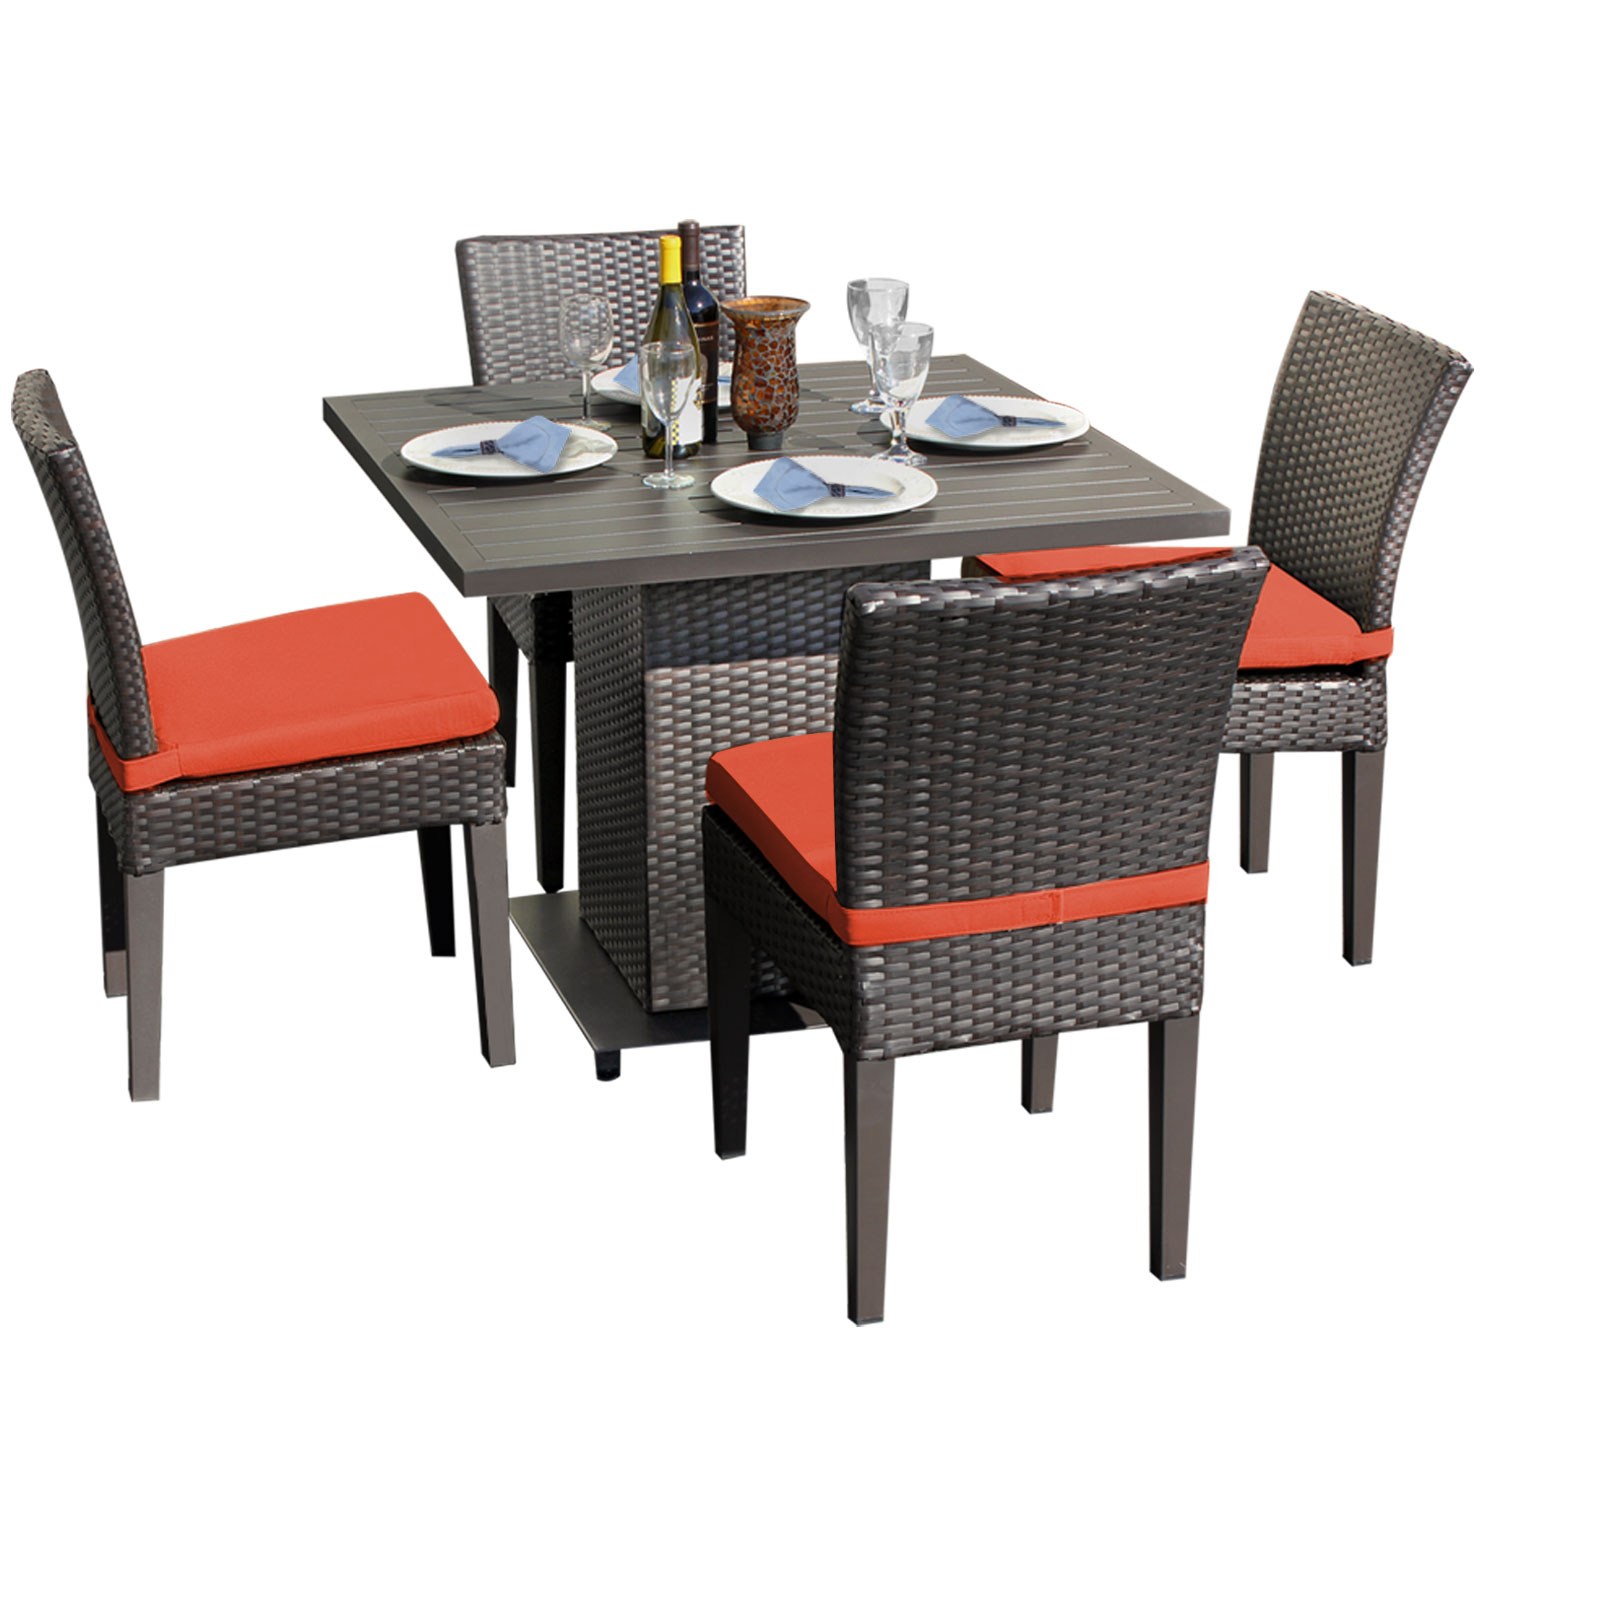 Venus Square Dining Table with 4 Chairs